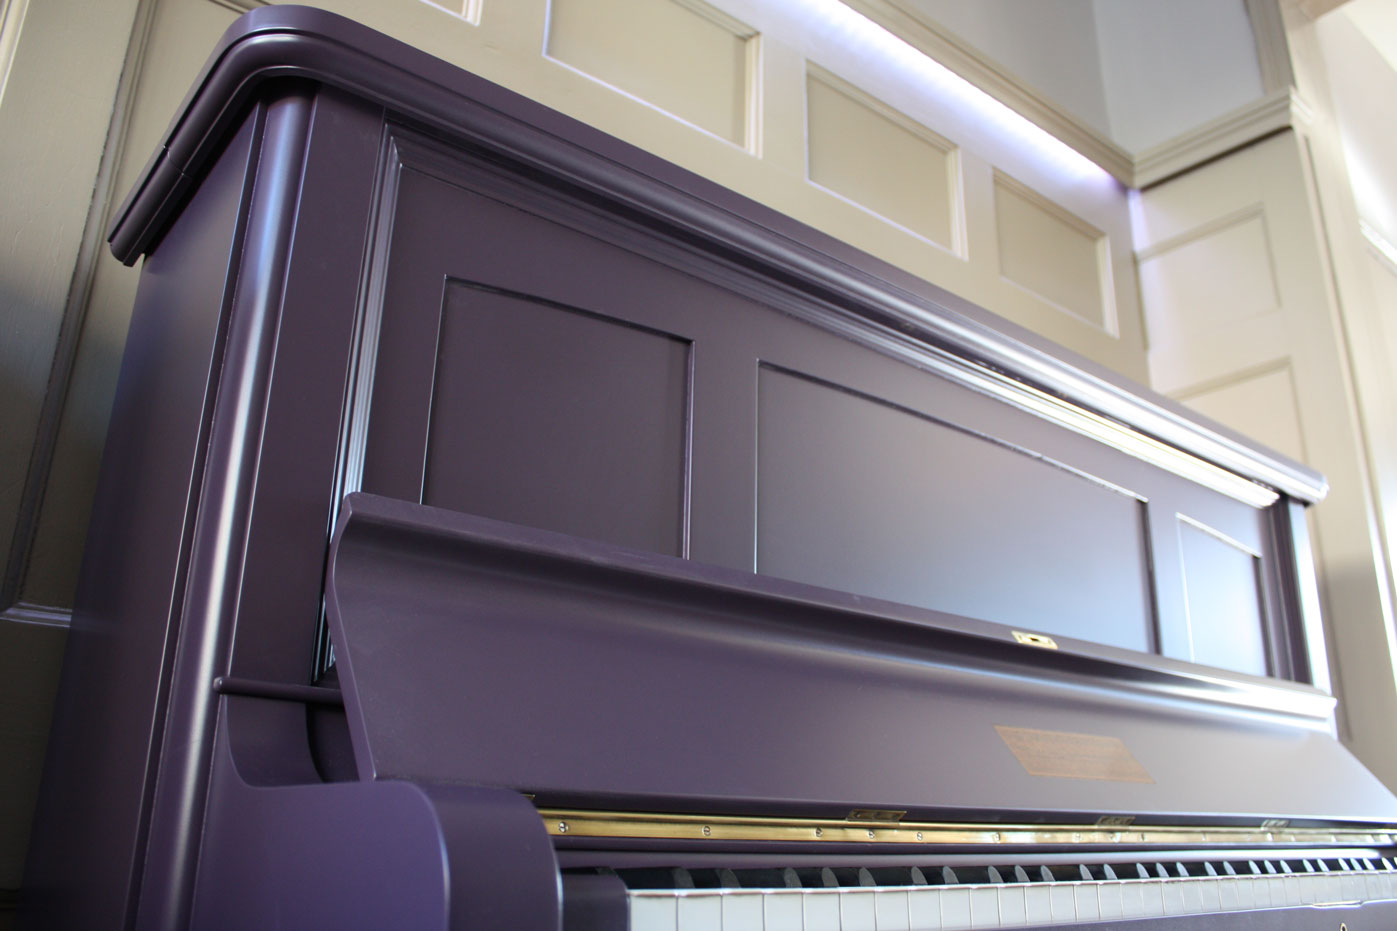 farrow ball painted challen son upright piano. Black Bedroom Furniture Sets. Home Design Ideas